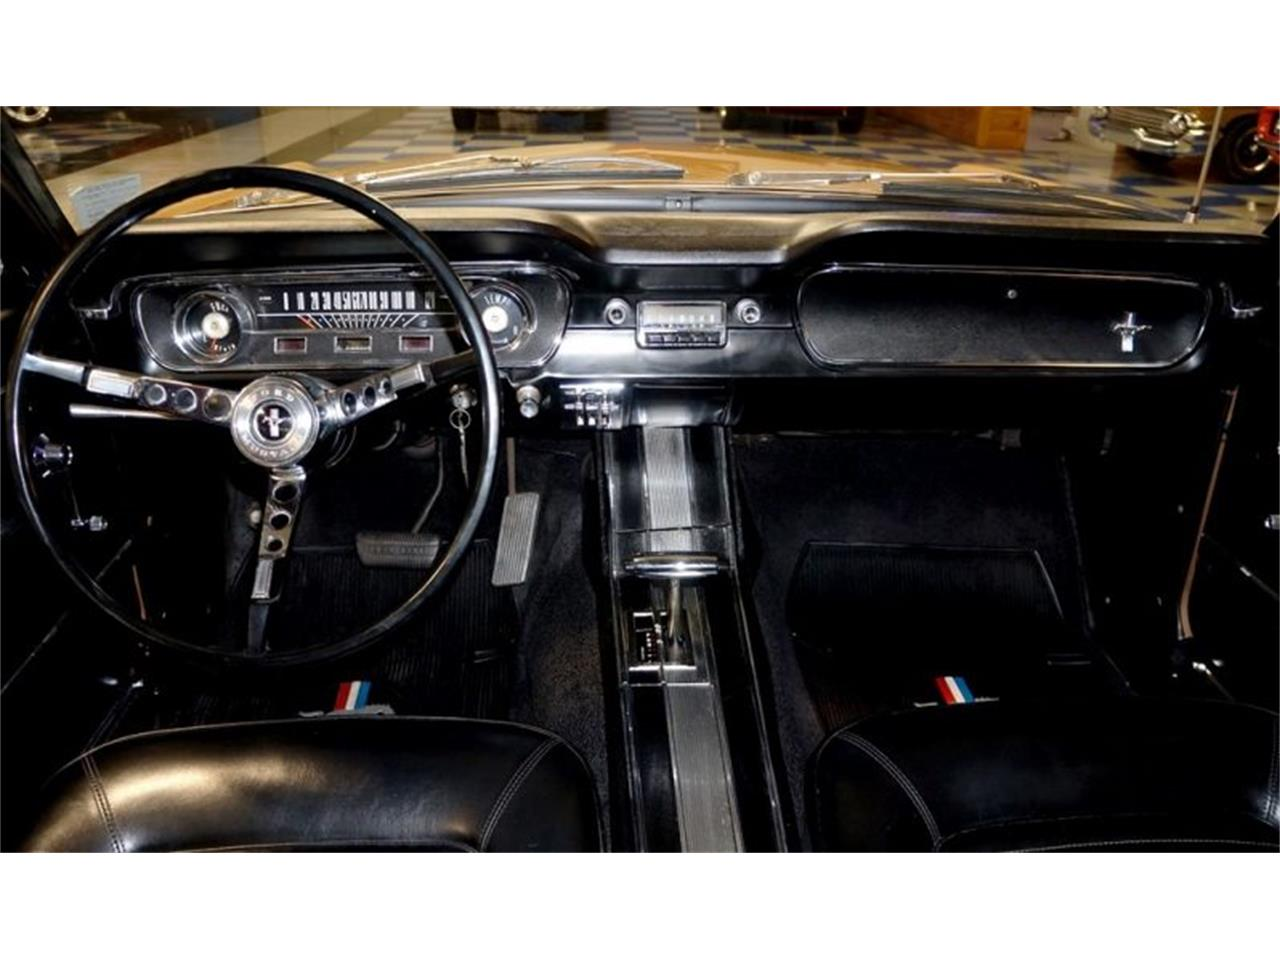 Large Picture of '65 Ford Mustang located in Indianapolis Indiana - $37,500.00 - Q6QR